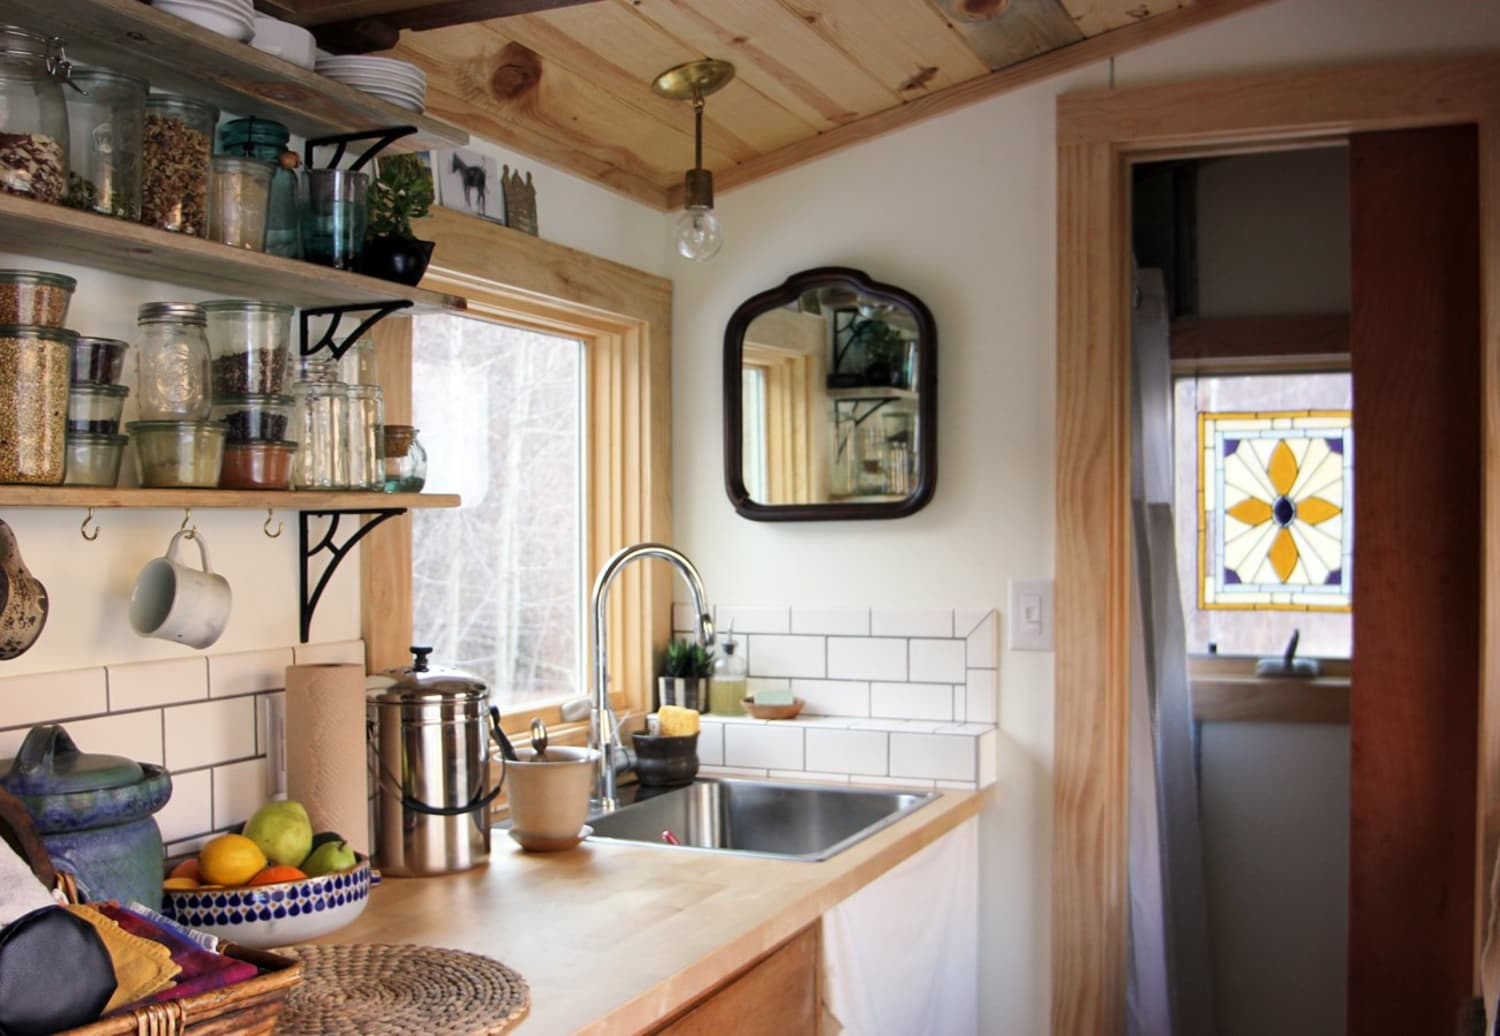 Small space modern farmhouse decorating ideas apartment - Modern farmhouse interior design ideas ...